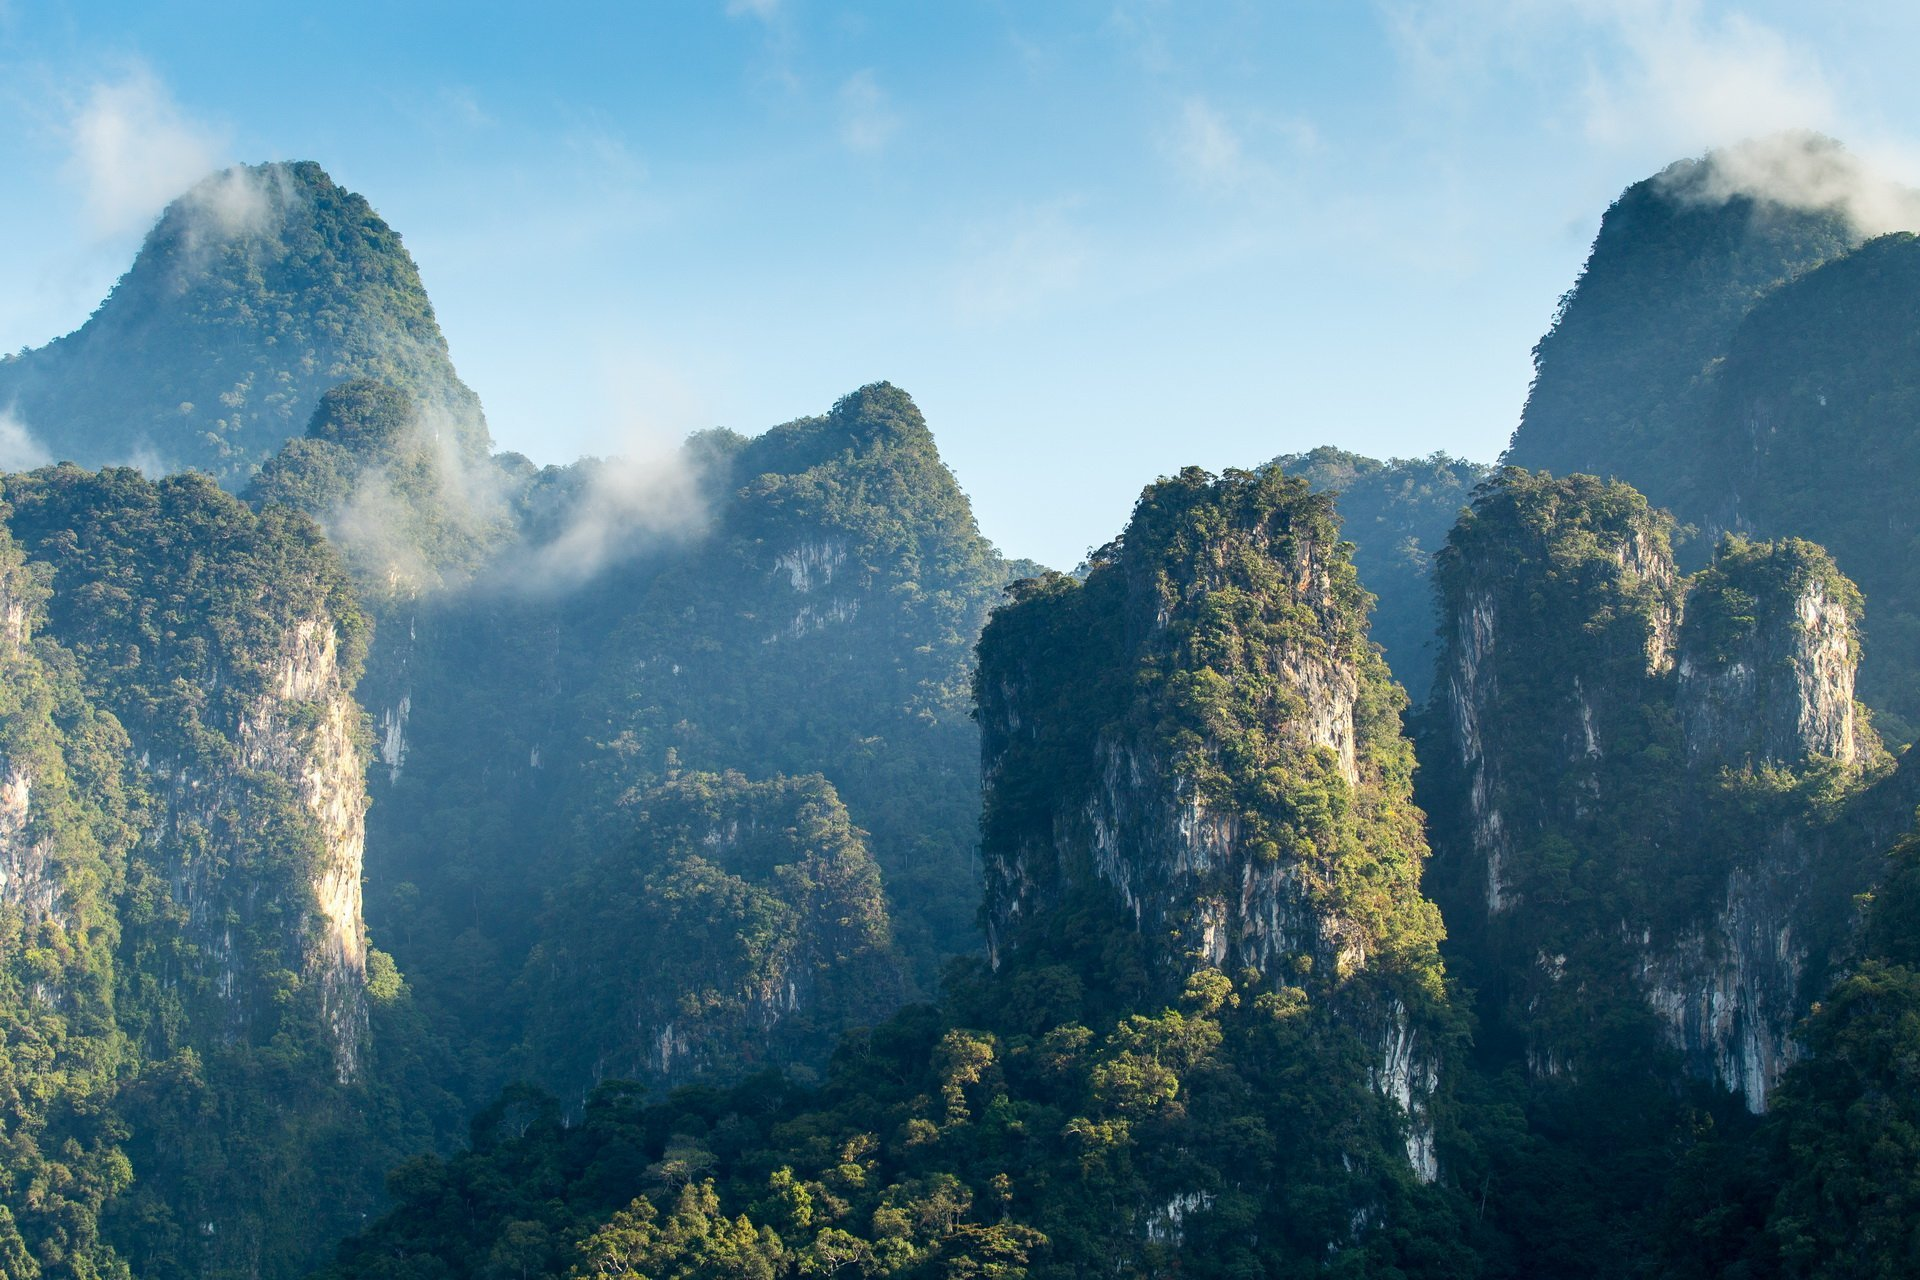 Facts about Khao Sok topography, limestone cliffs and ancient rainforest